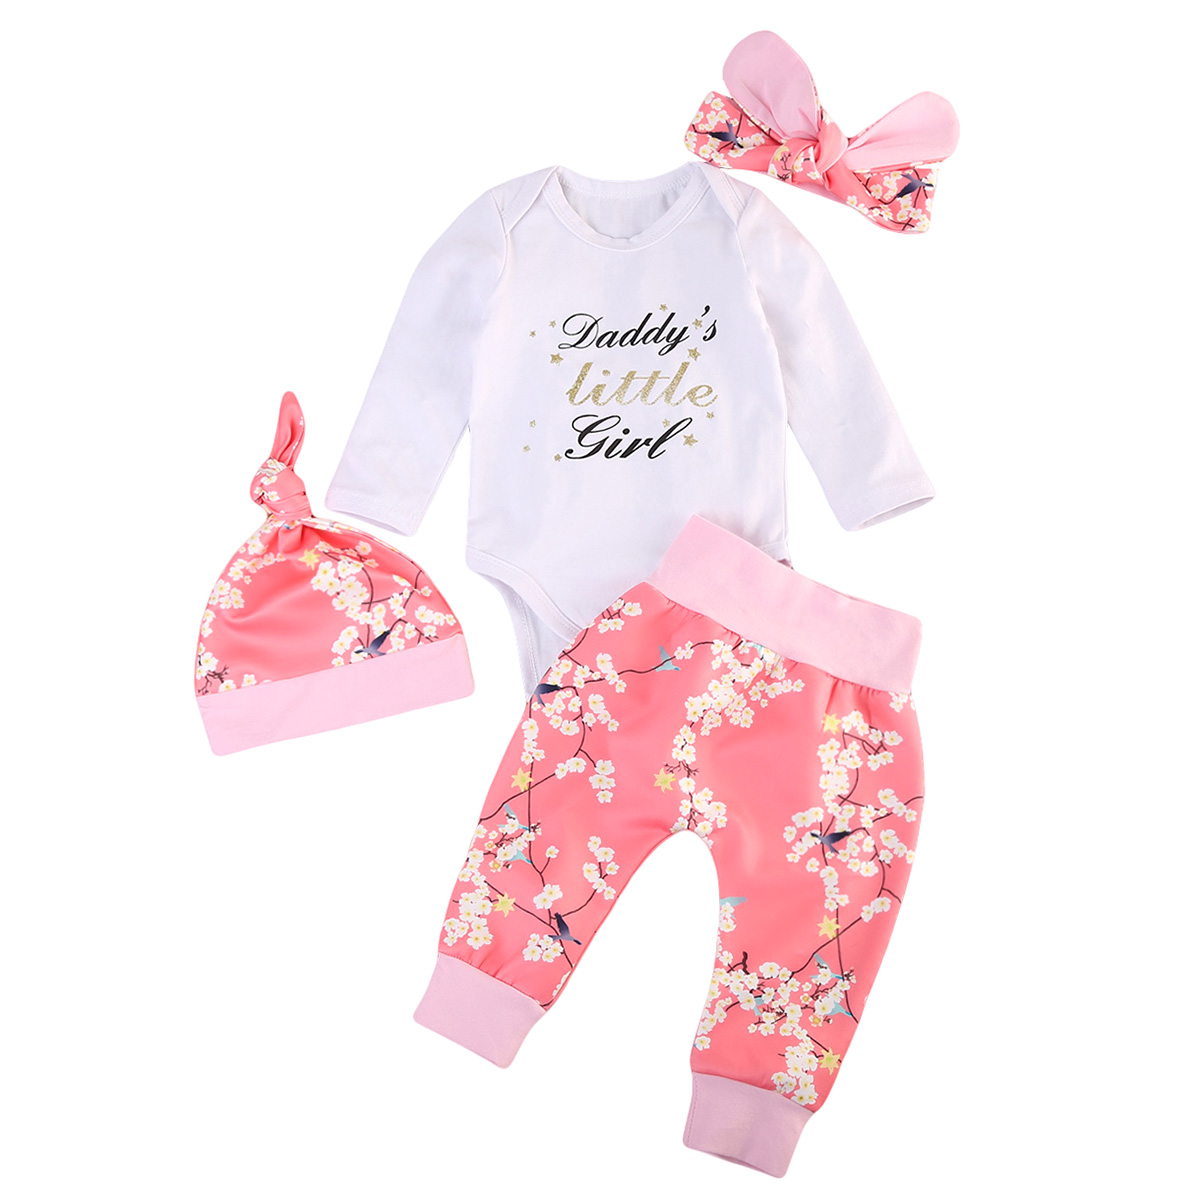 Toddler Baby Girls Romper Bodysuit Tops Pants Leggings Outfits Set Clothes 4pcs Fall daddys little girl outfit newborn baby girls clothing 2018 toddler baby girl tops bodysuit romper flower pants bow headband 3pcs clothes outfits set